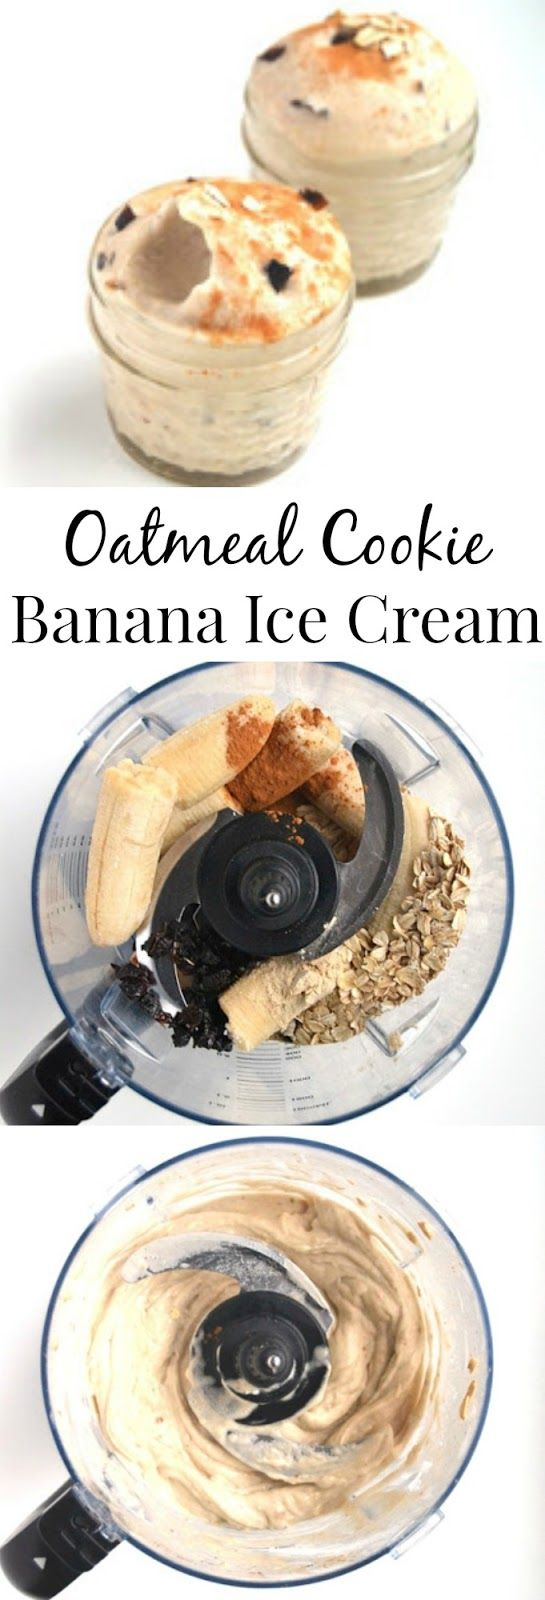 Oatmeal Cookie Banana Ice Cream is ready in just 5 minutes and tastes like dessert but has no-added sugar and is rich in fiber and protein. www.nutritionistreviews.com